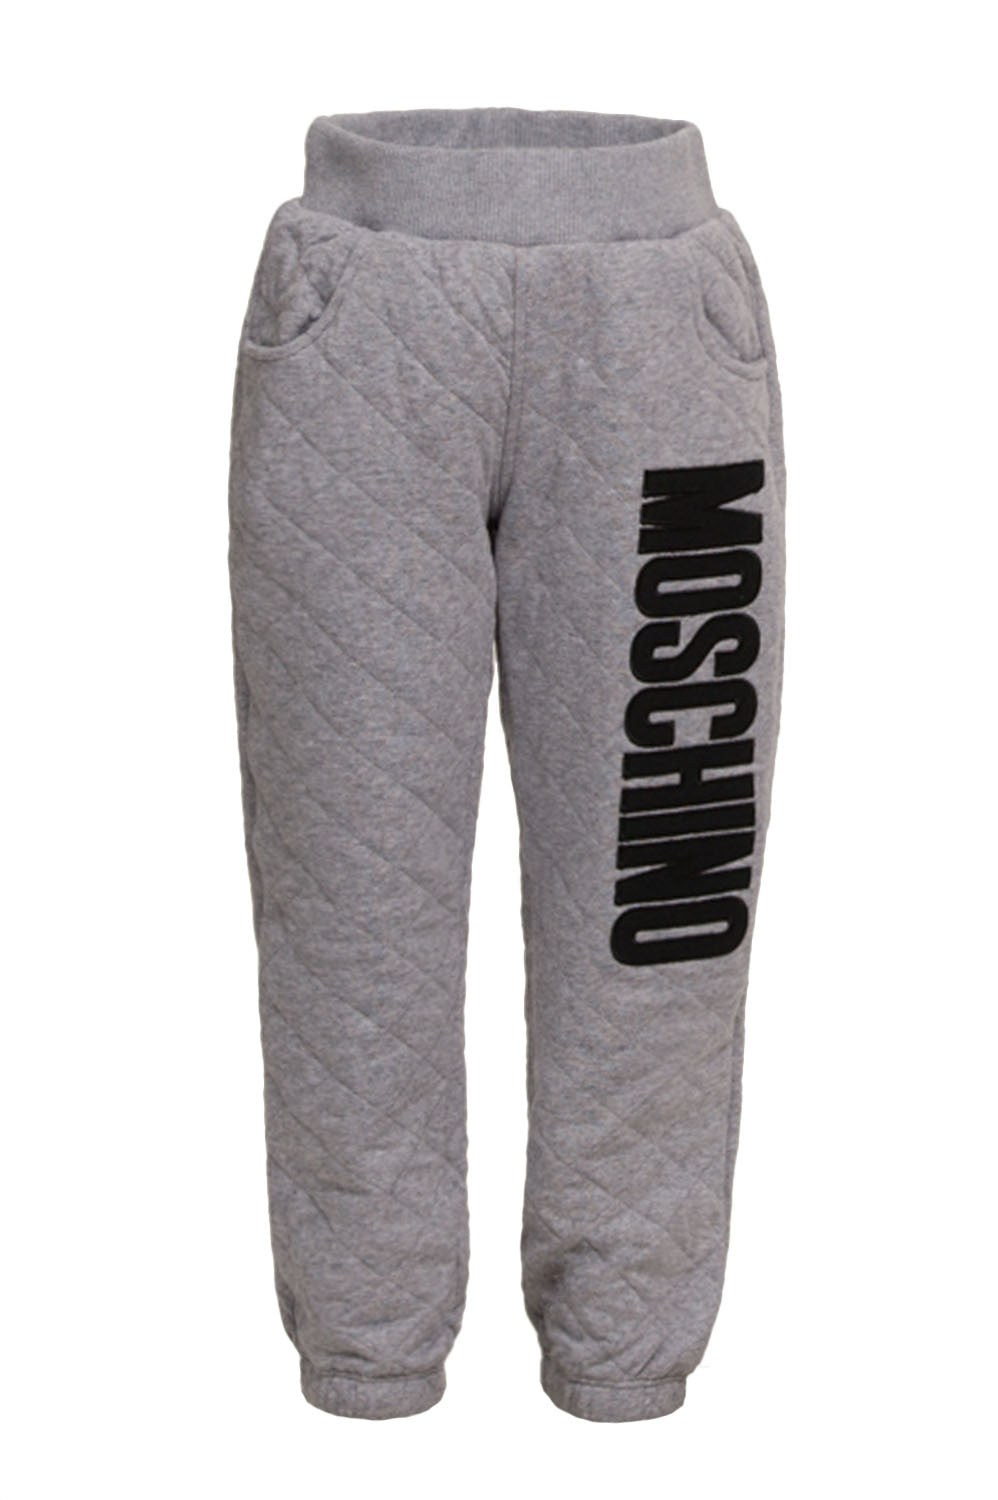 Baby Quilted Grey Sweatpants